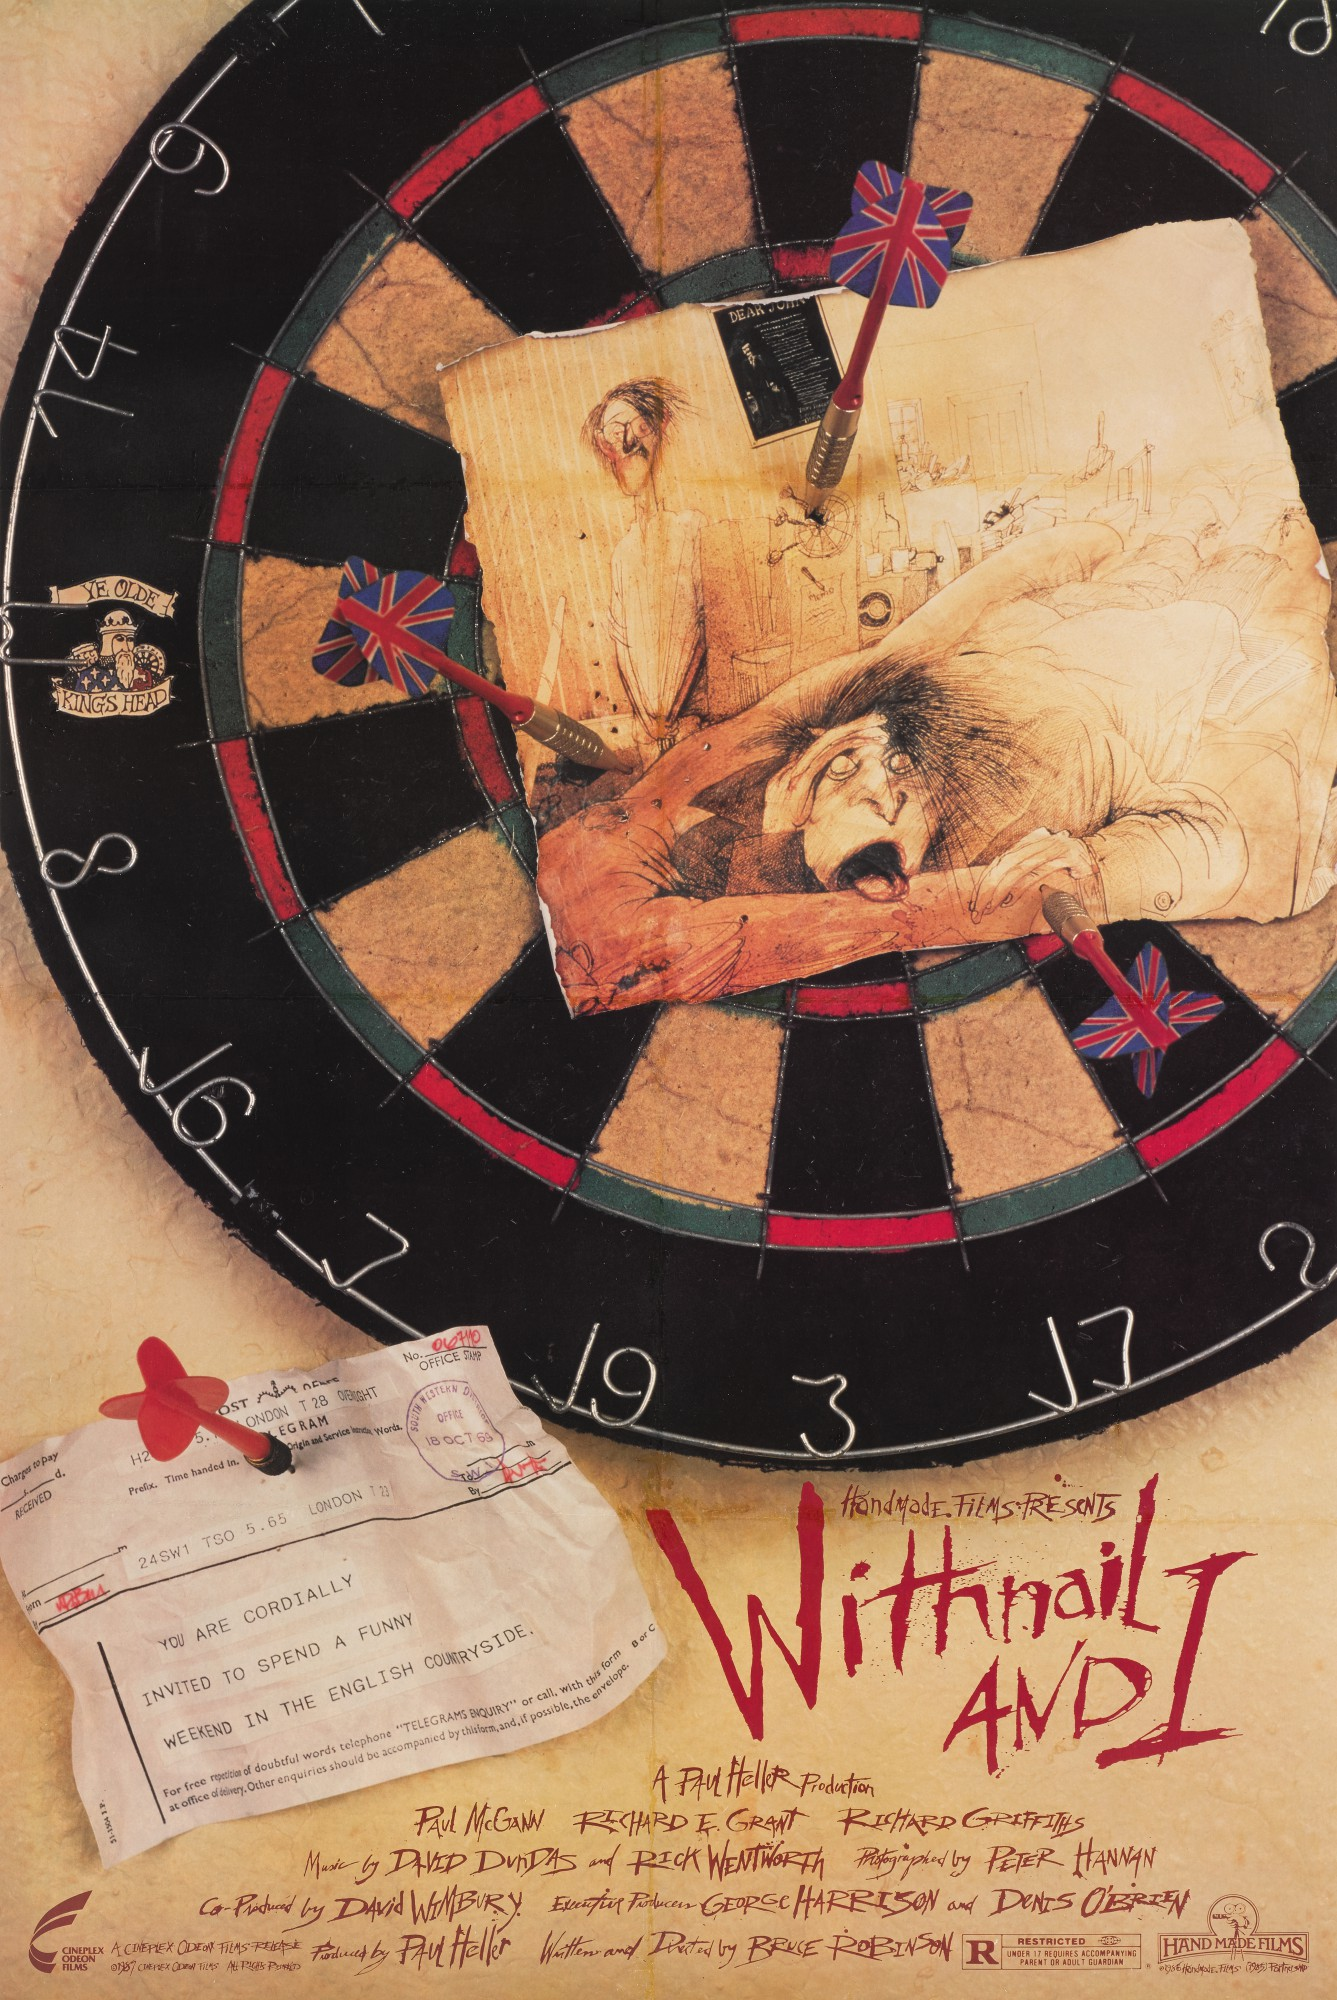 WITHNAIL AND I (1987) POSTER, US